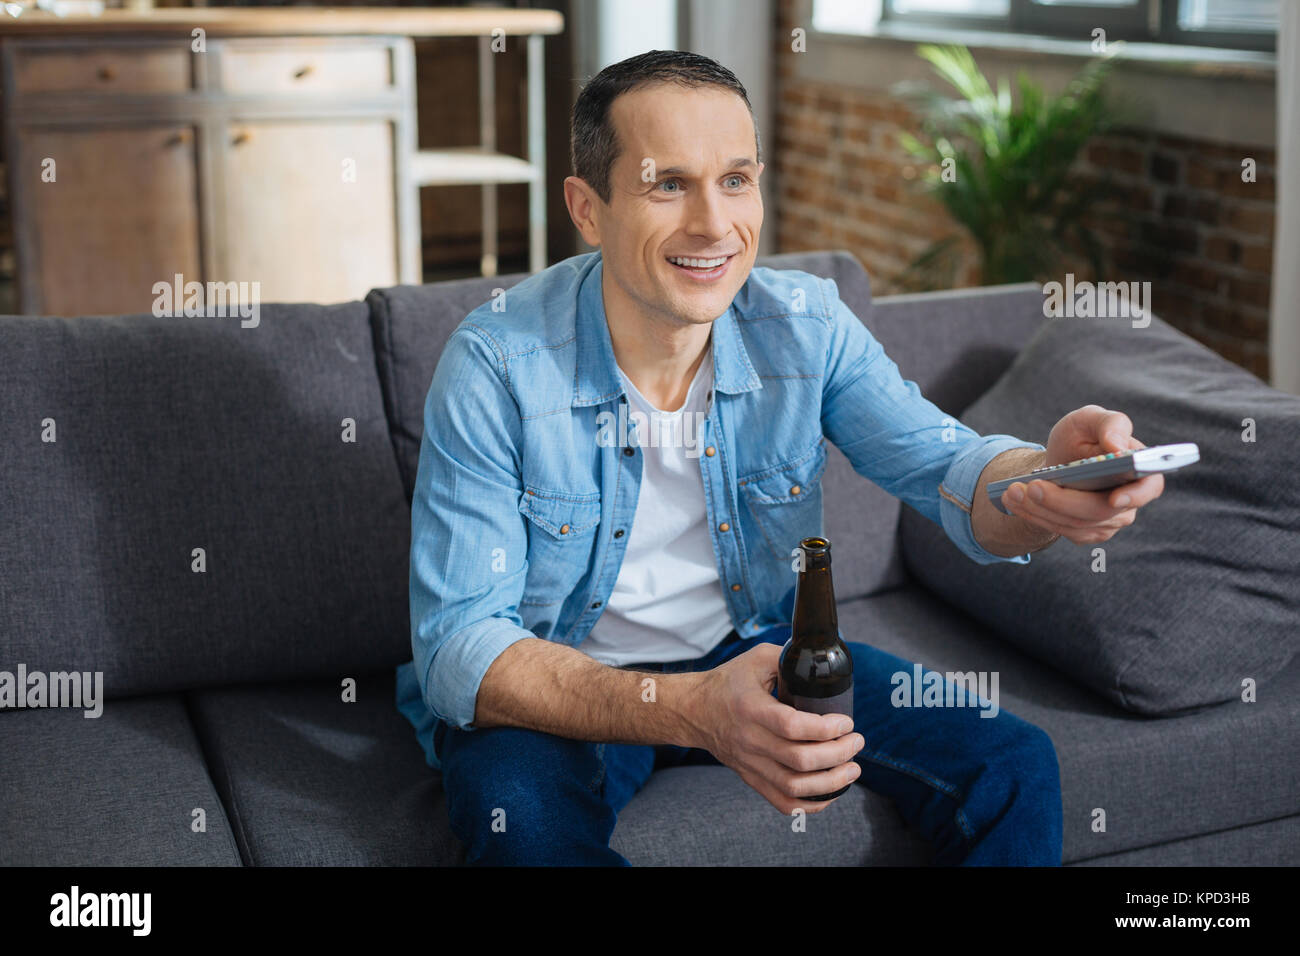 Cheerful male person watching TV - Stock Image